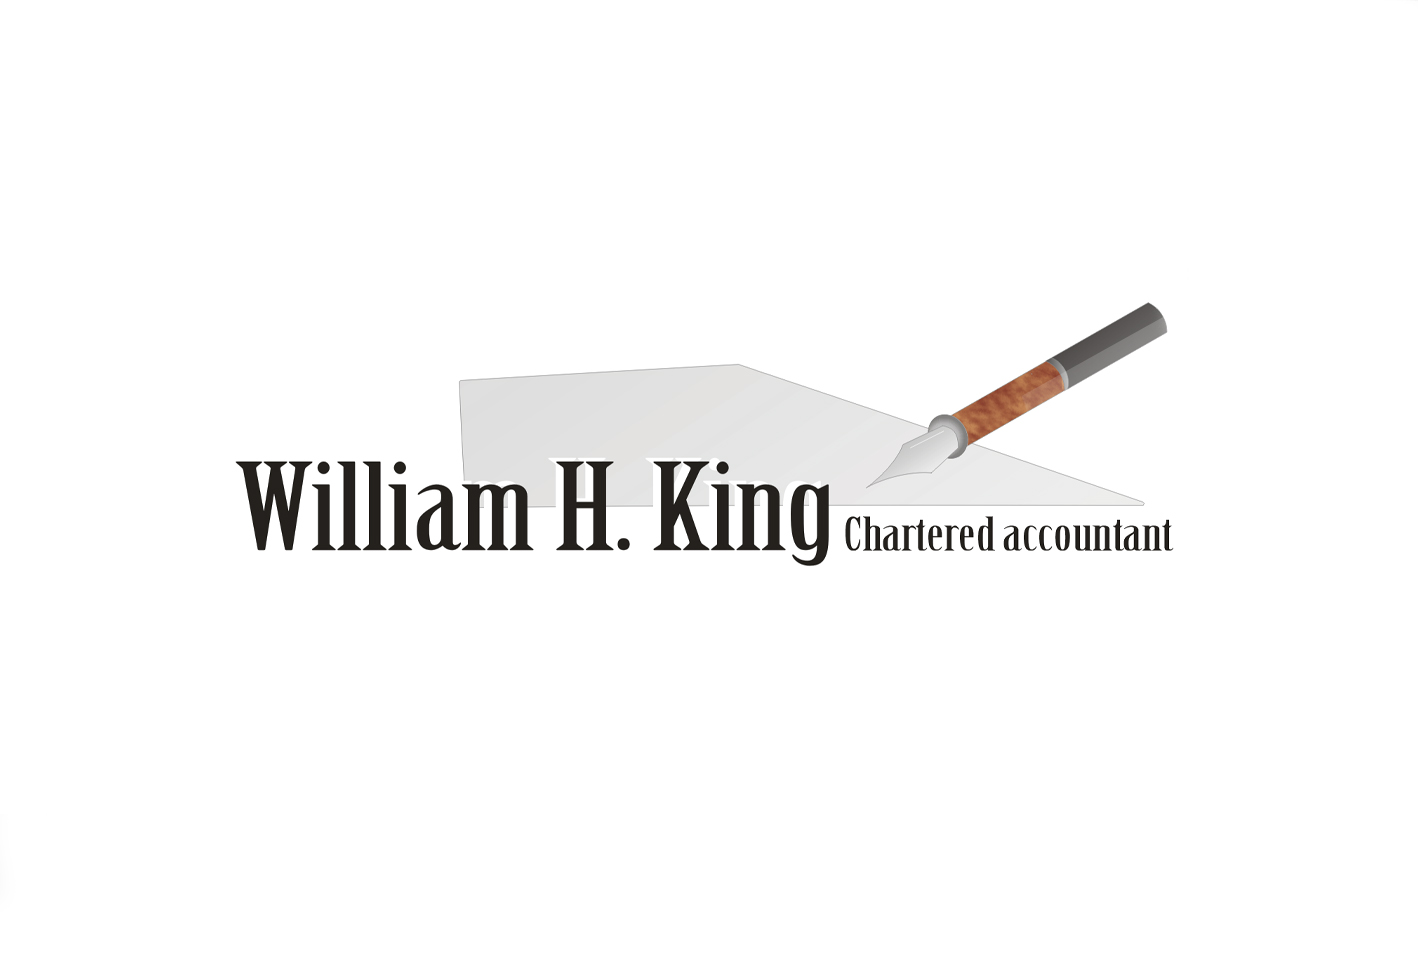 Logo Design by Kostas Vasiloglou - Entry No. 8 in the Logo Design Contest New Logo Design for William H. King, Chartered Accountant.